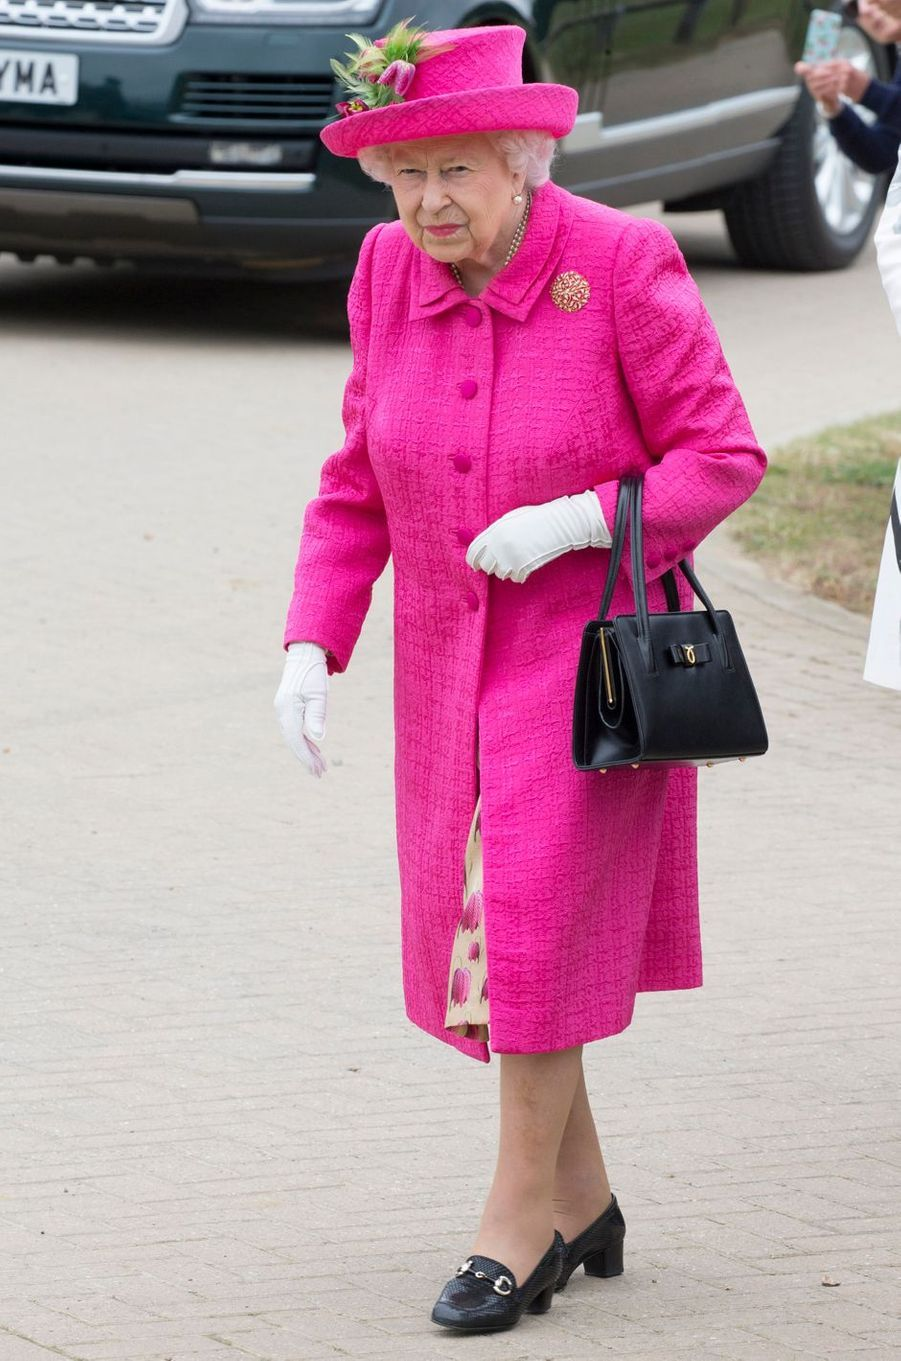 La reine Elizabeth II en rose flashy à Cambridge, le 9 juillet 2019